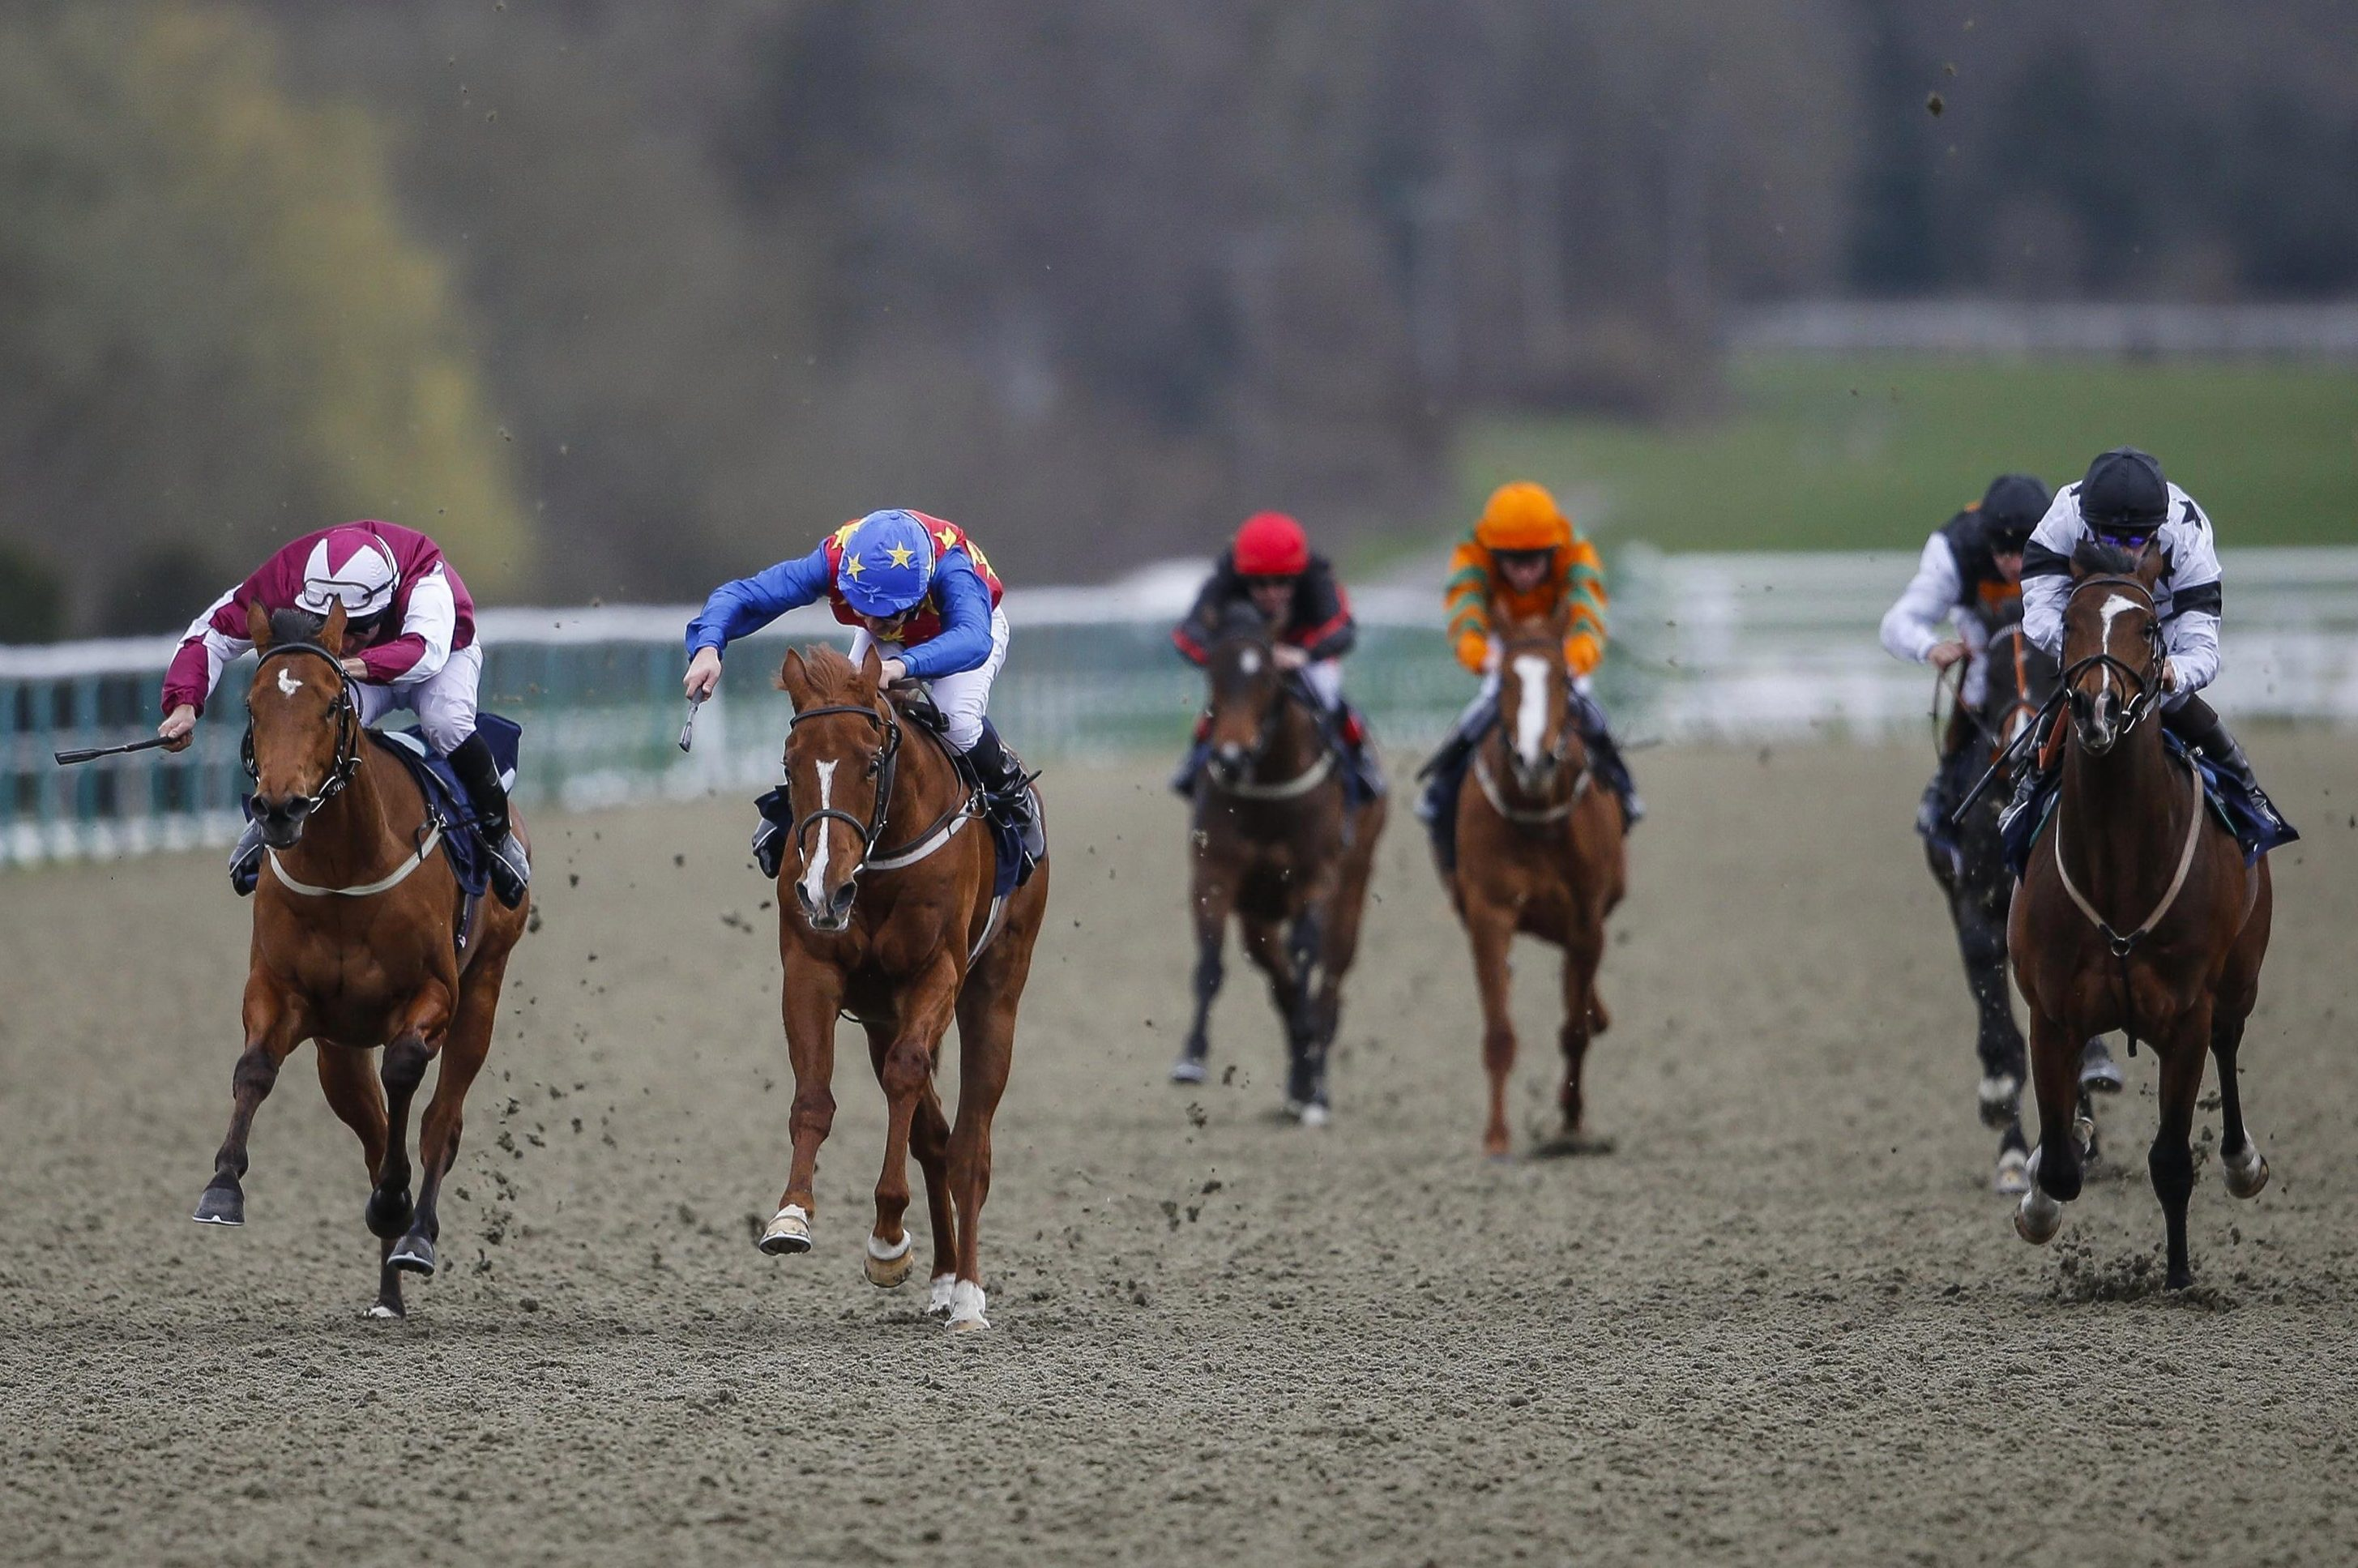 Best horse racing tips for today's action at Lingfield, Southwell and Fakenham from Tom Bull